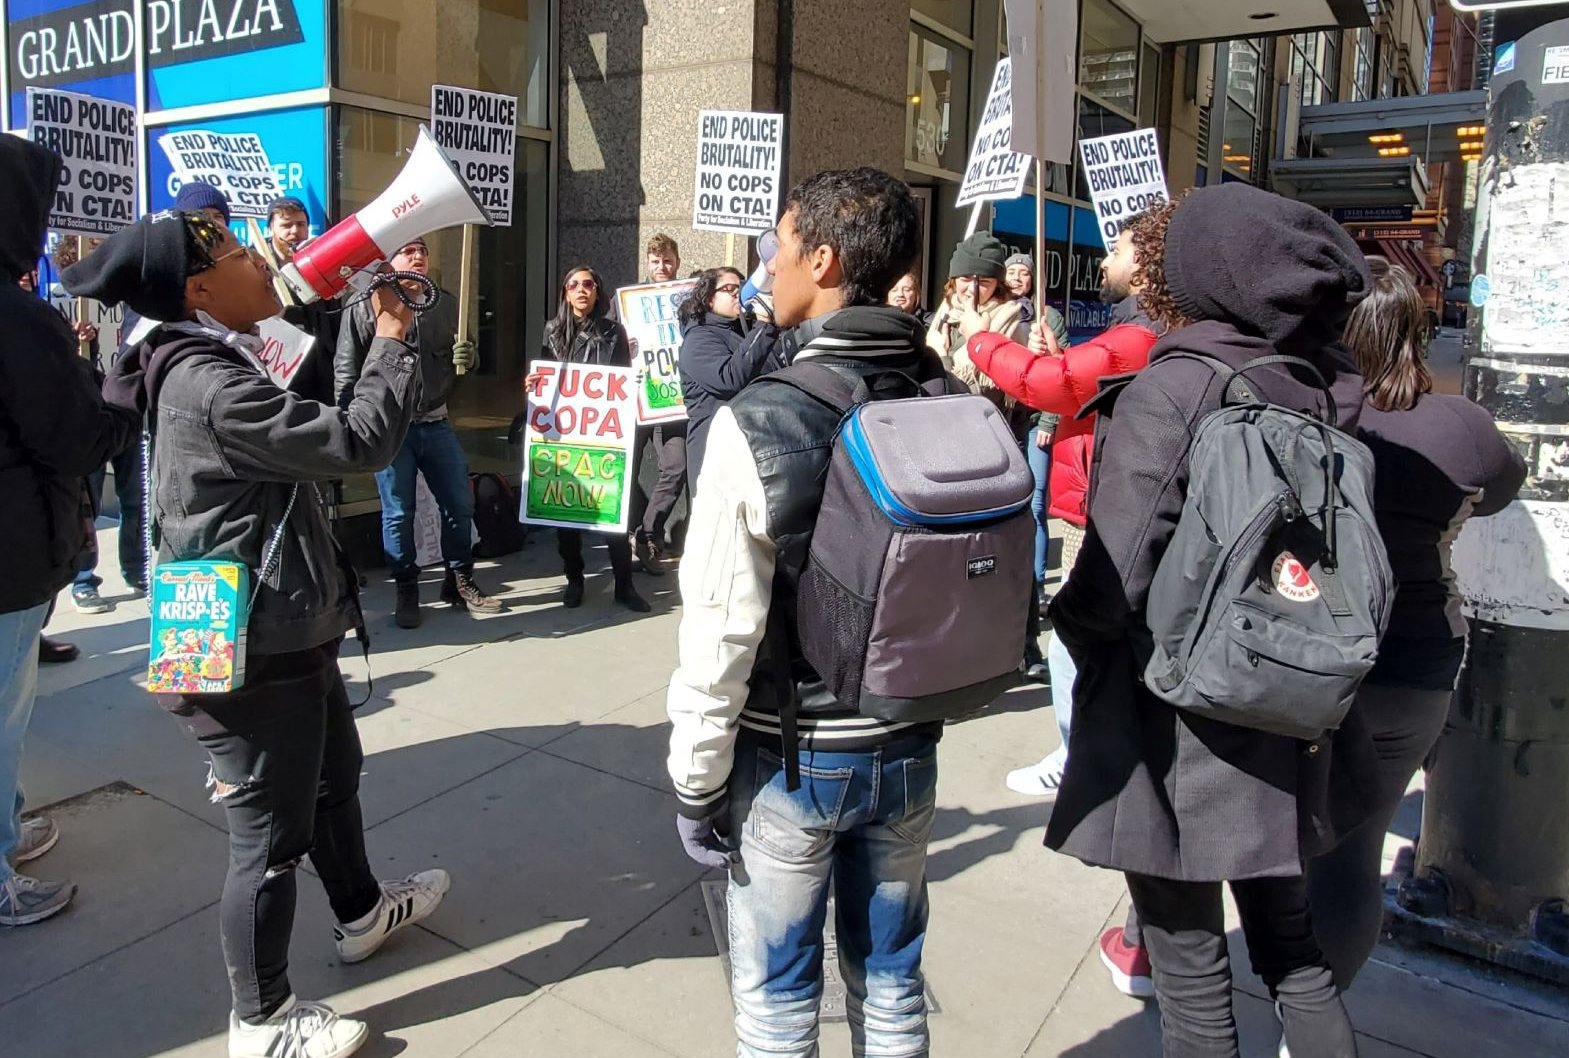 Chicago activists demonstrate against police violence